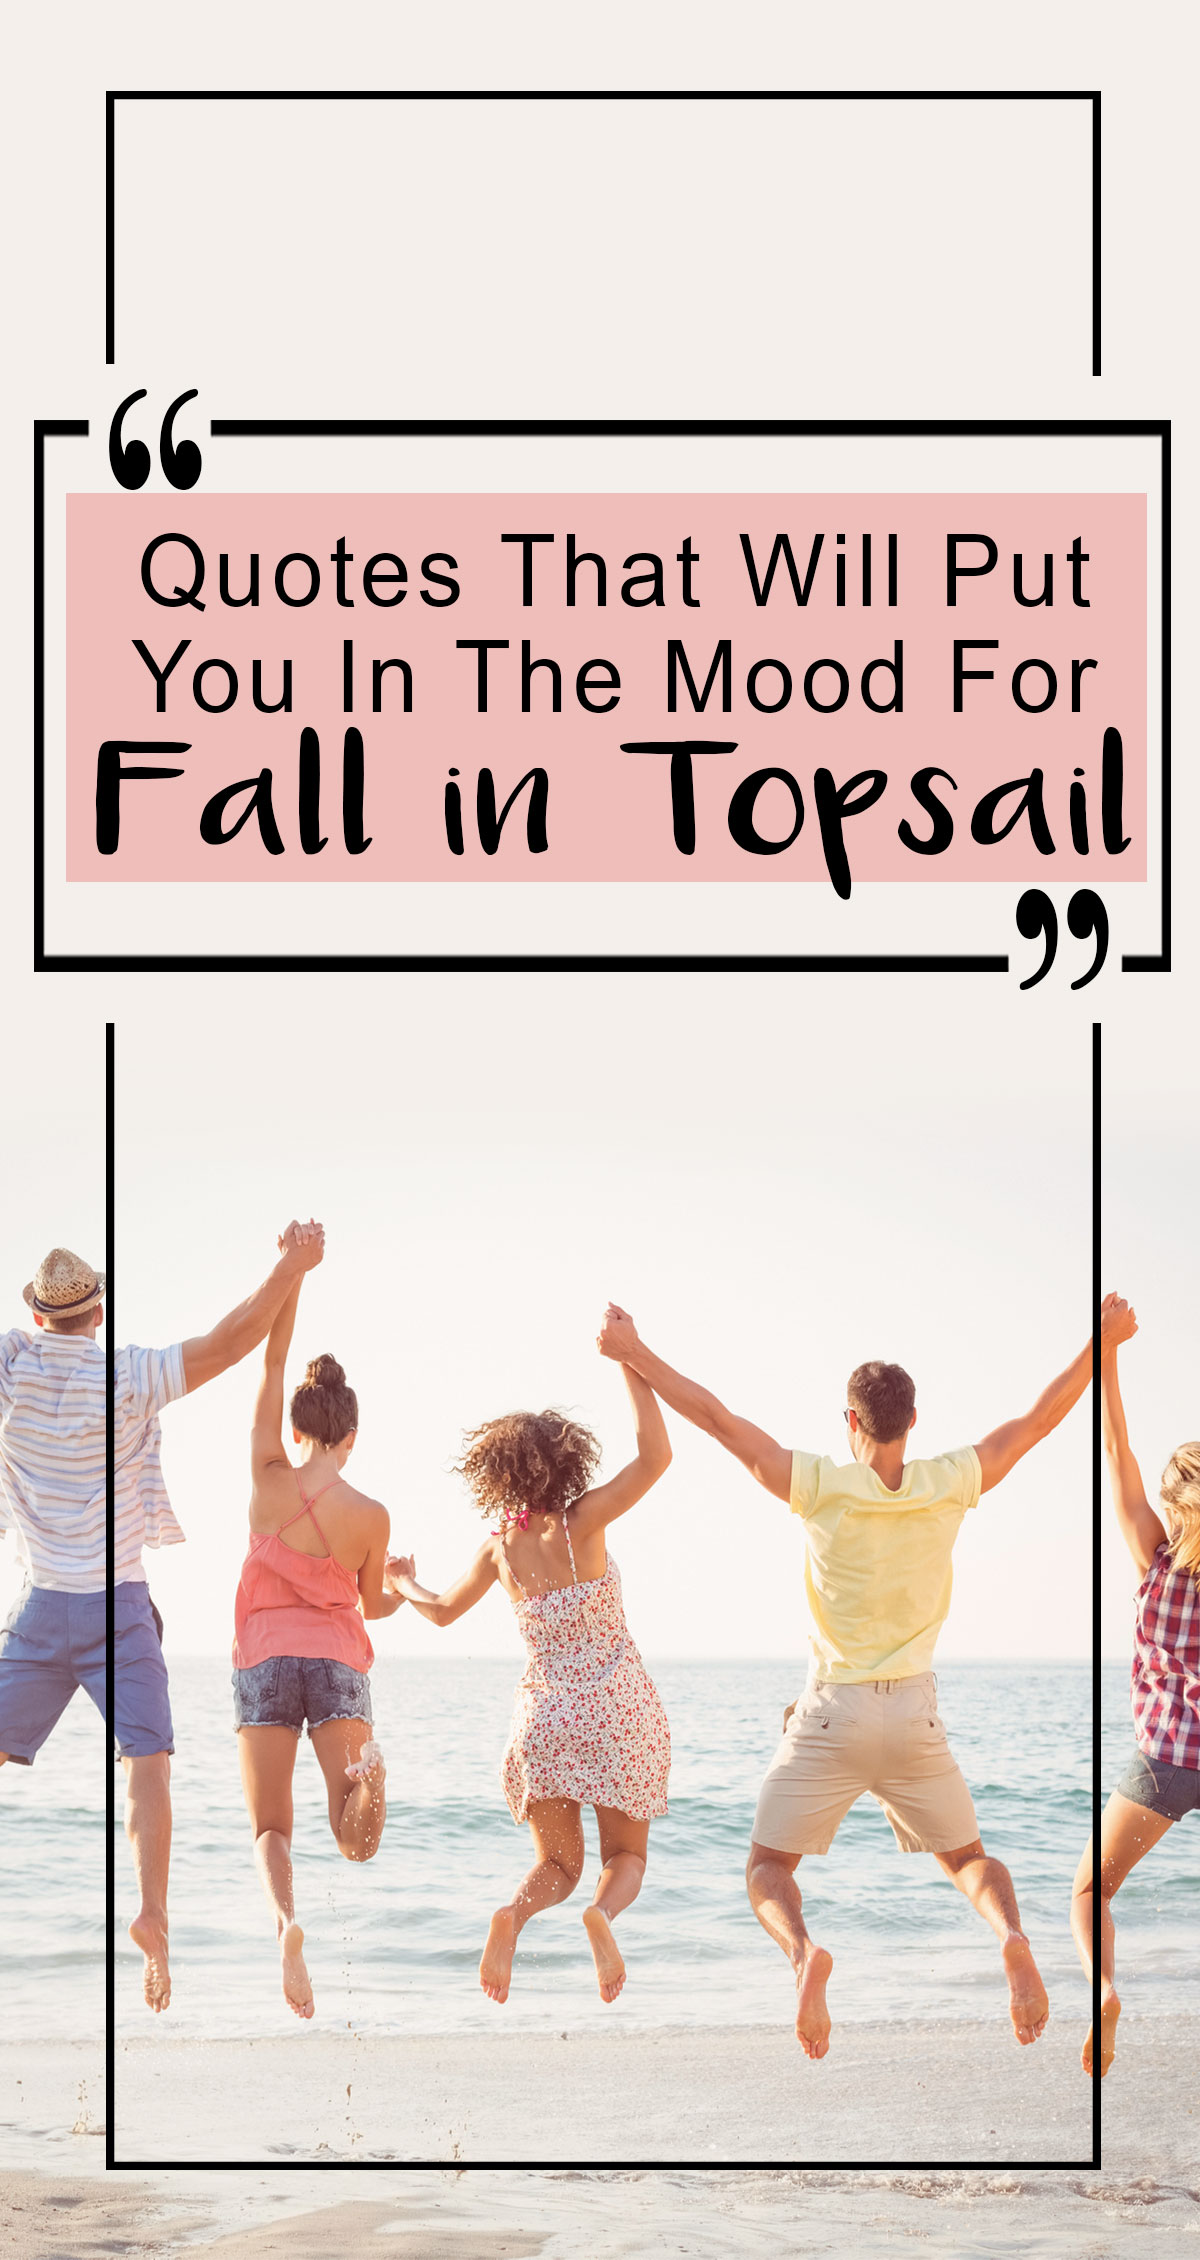 Quotes That Will Put You in the Mood for Fall at Topsail Pin